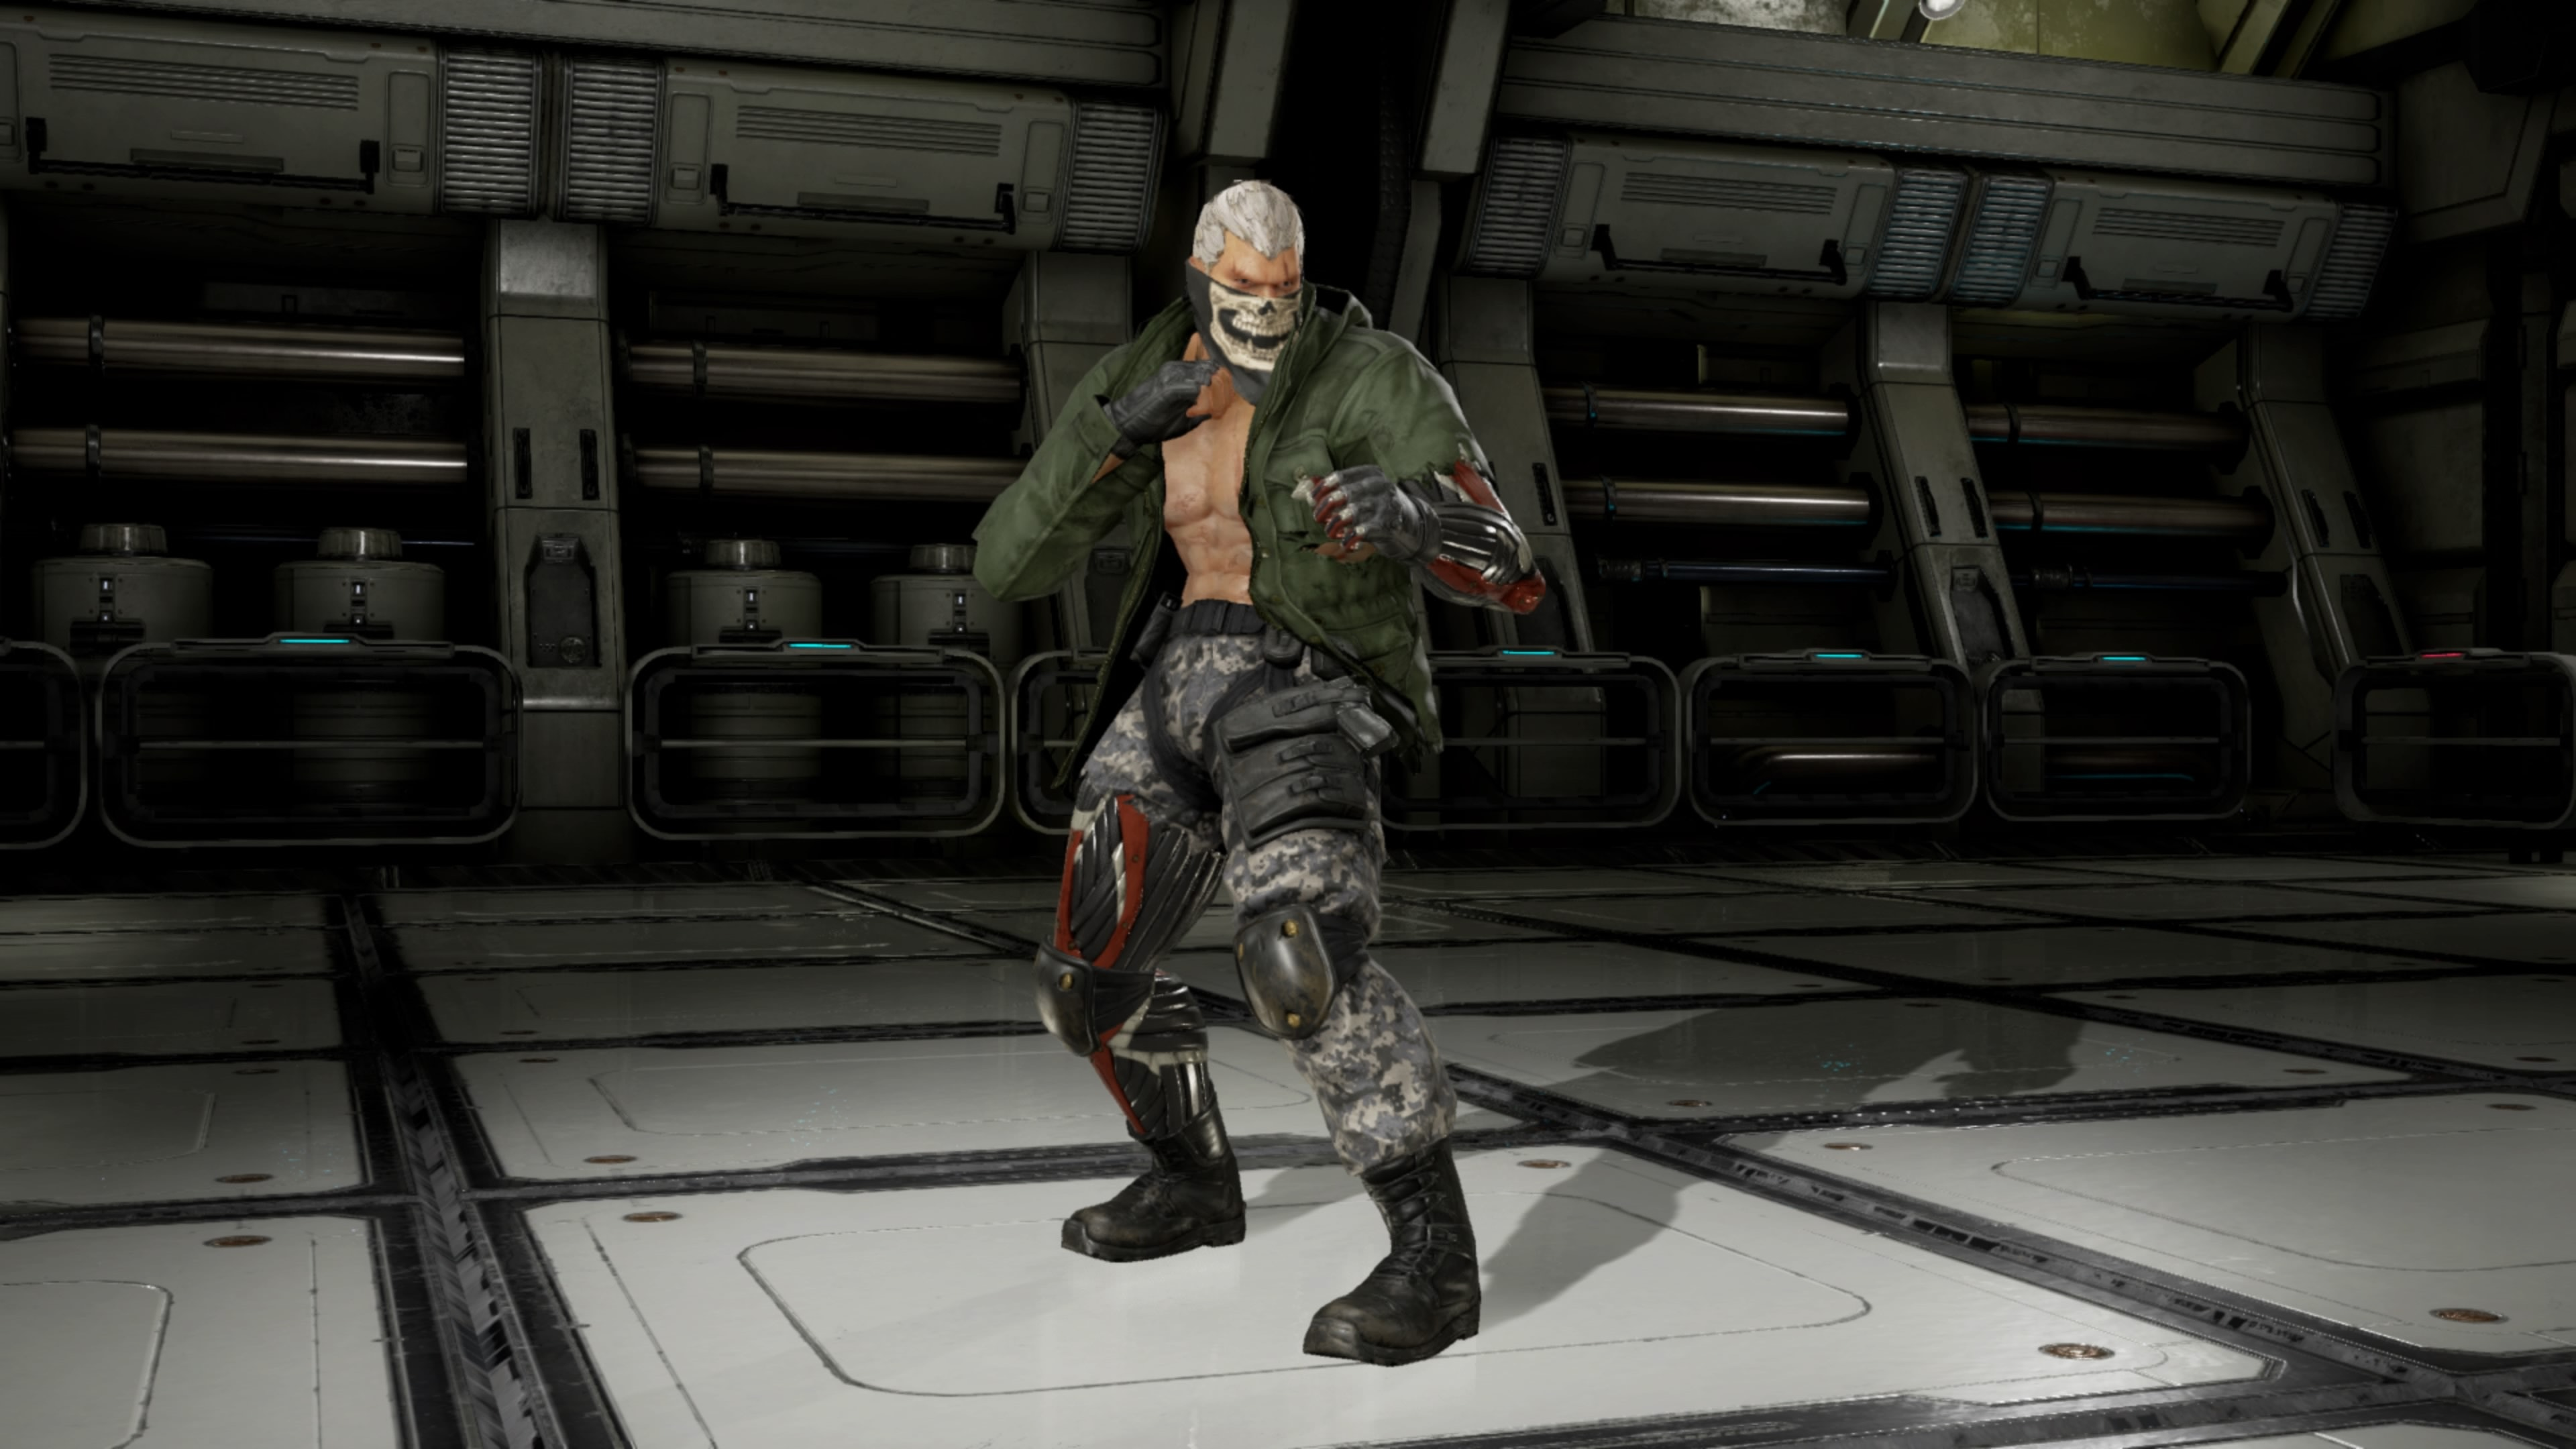 Tekken 7' Roster: Full character list of every base, pre-order and